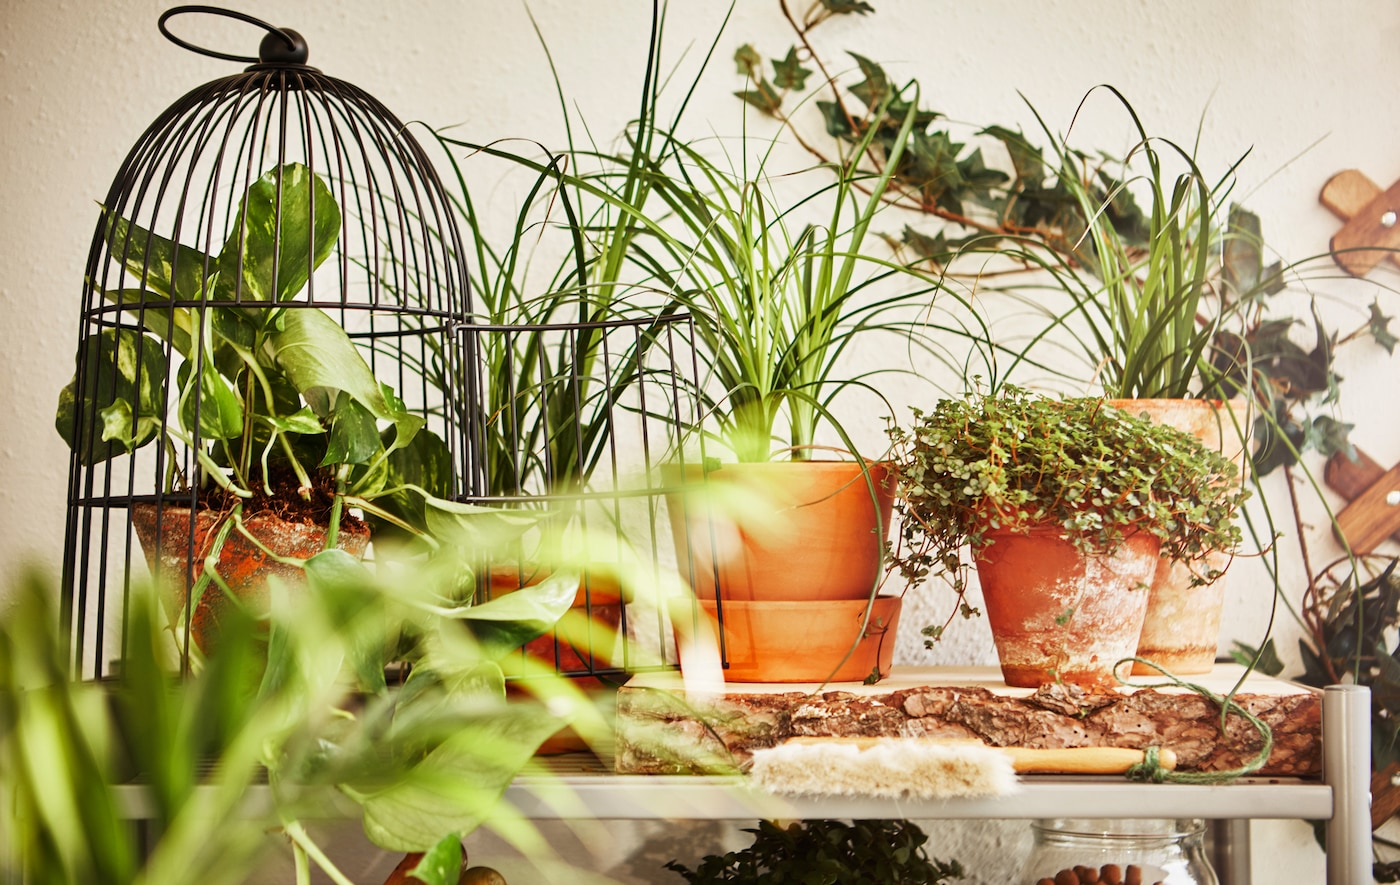 A close-up image of potted plants sitting on a shelf.